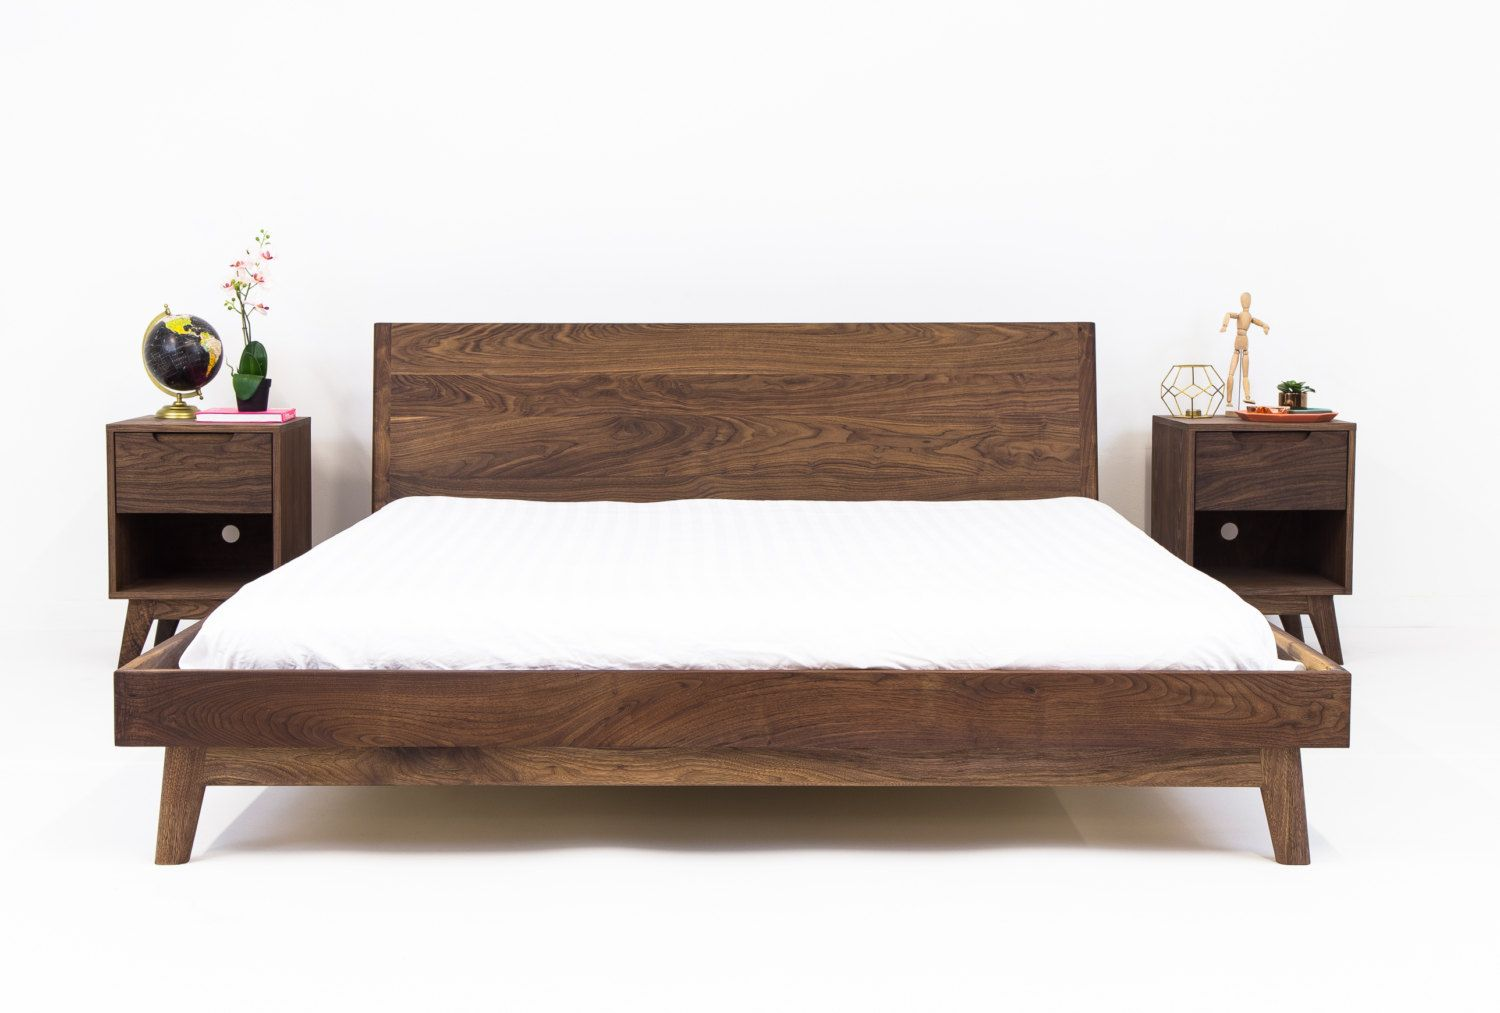 Walnut Platform Bed Frame, Mid Century Modern Bed, Wood ... on Modern Boho Bed Frame  id=74619